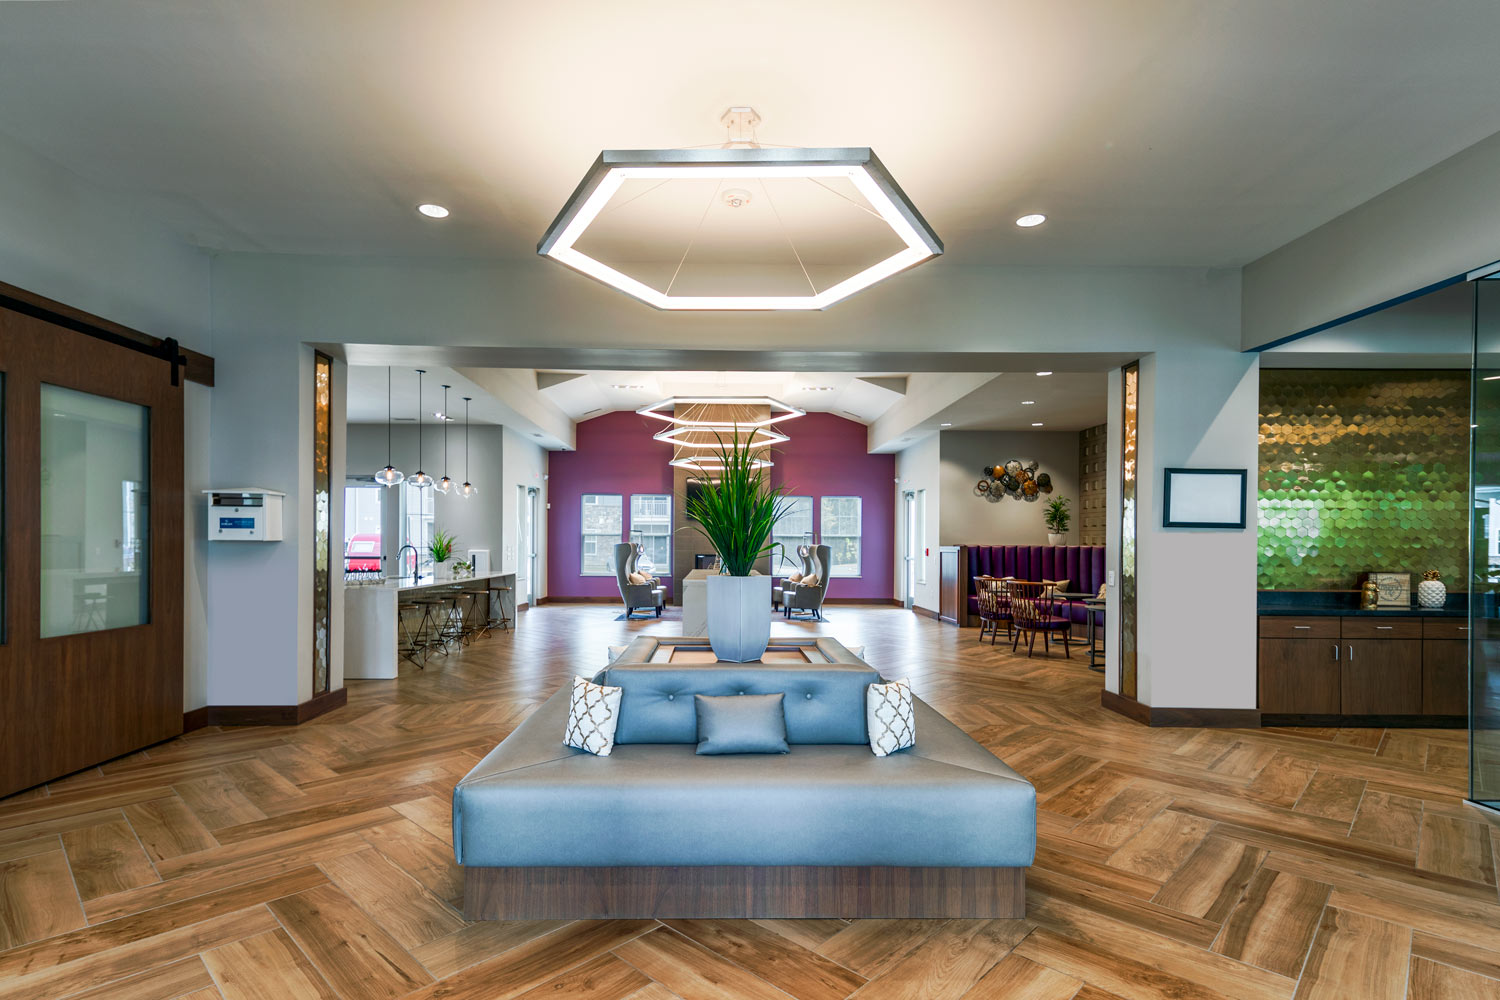 clubhouse with bench seating area, tables, chairs, modern lighting and bar area - luxury apartments near christiana mall